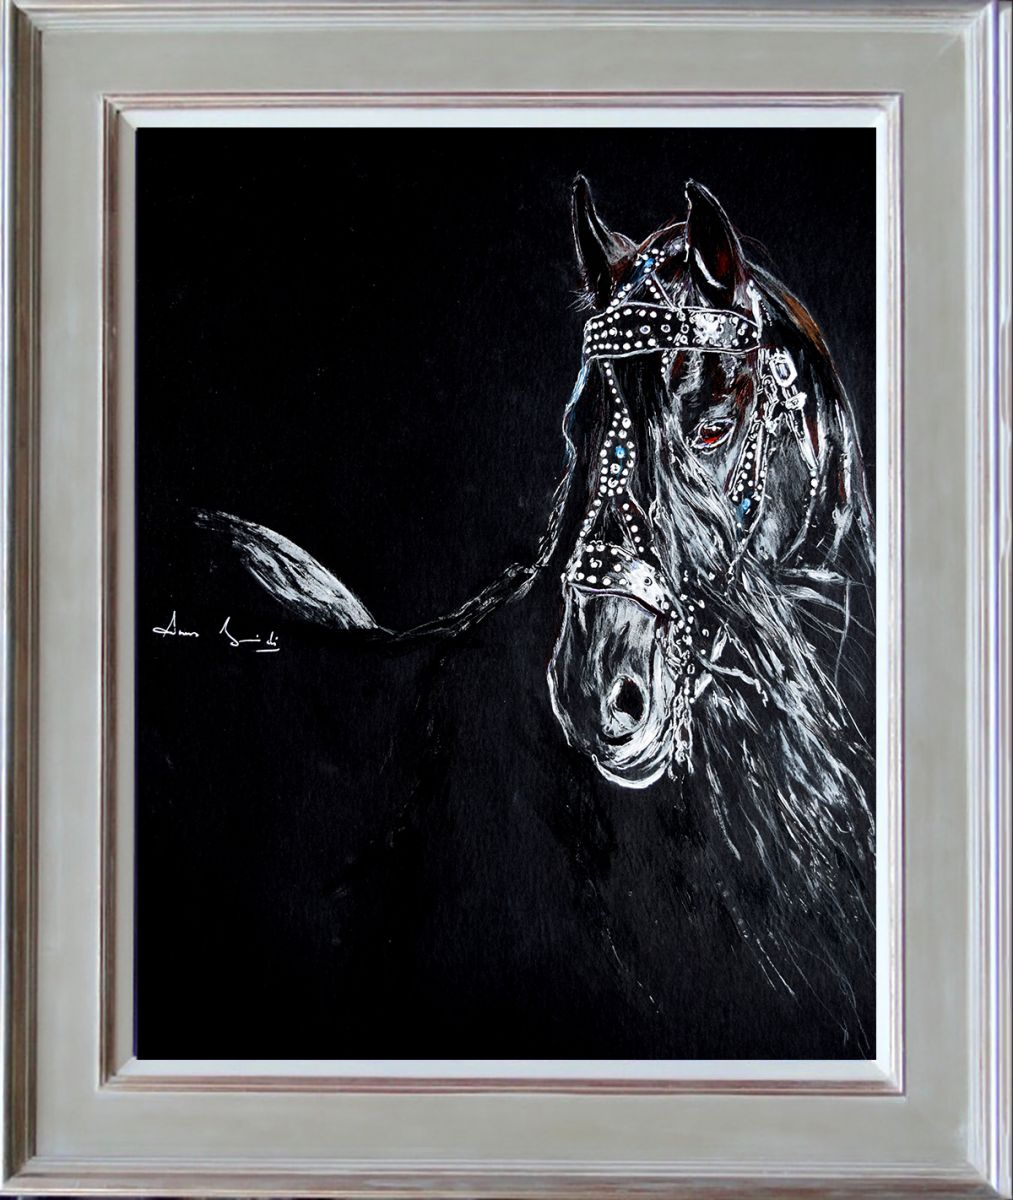 Wall Art Black Horse : On black horse head equine art modern contemporary wall